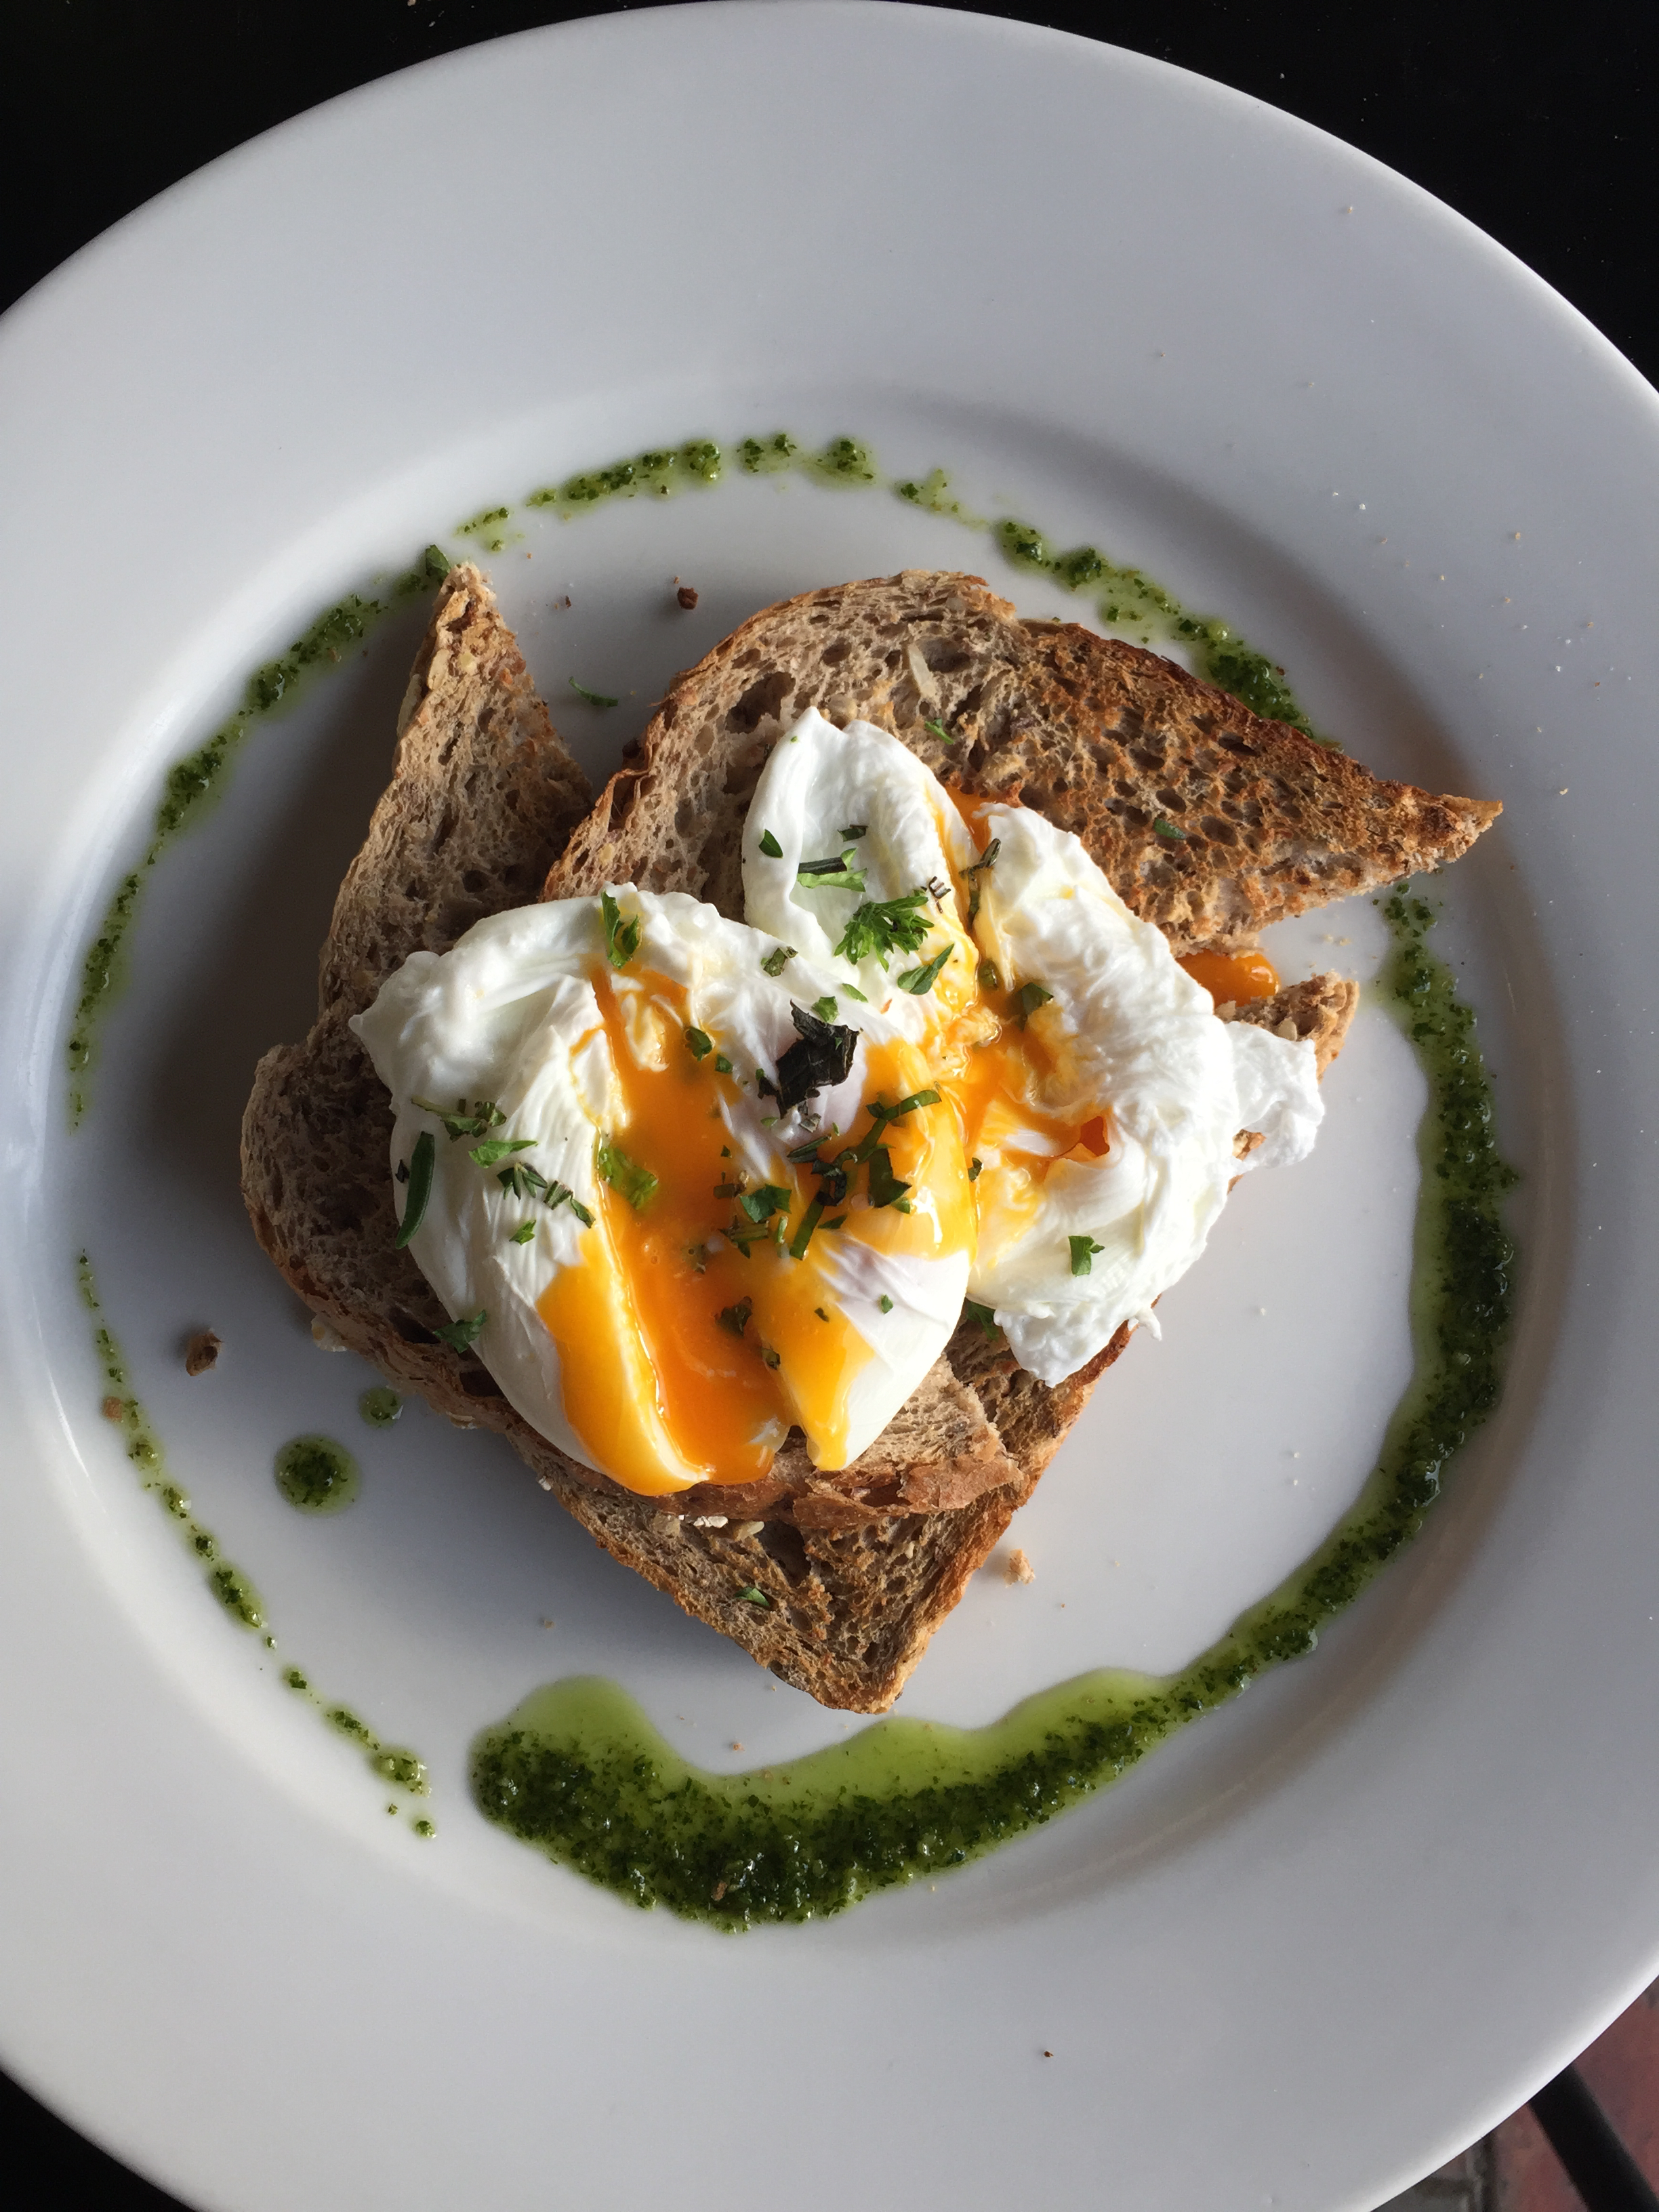 Have you ever seen a more perfect pair of poached eggs?